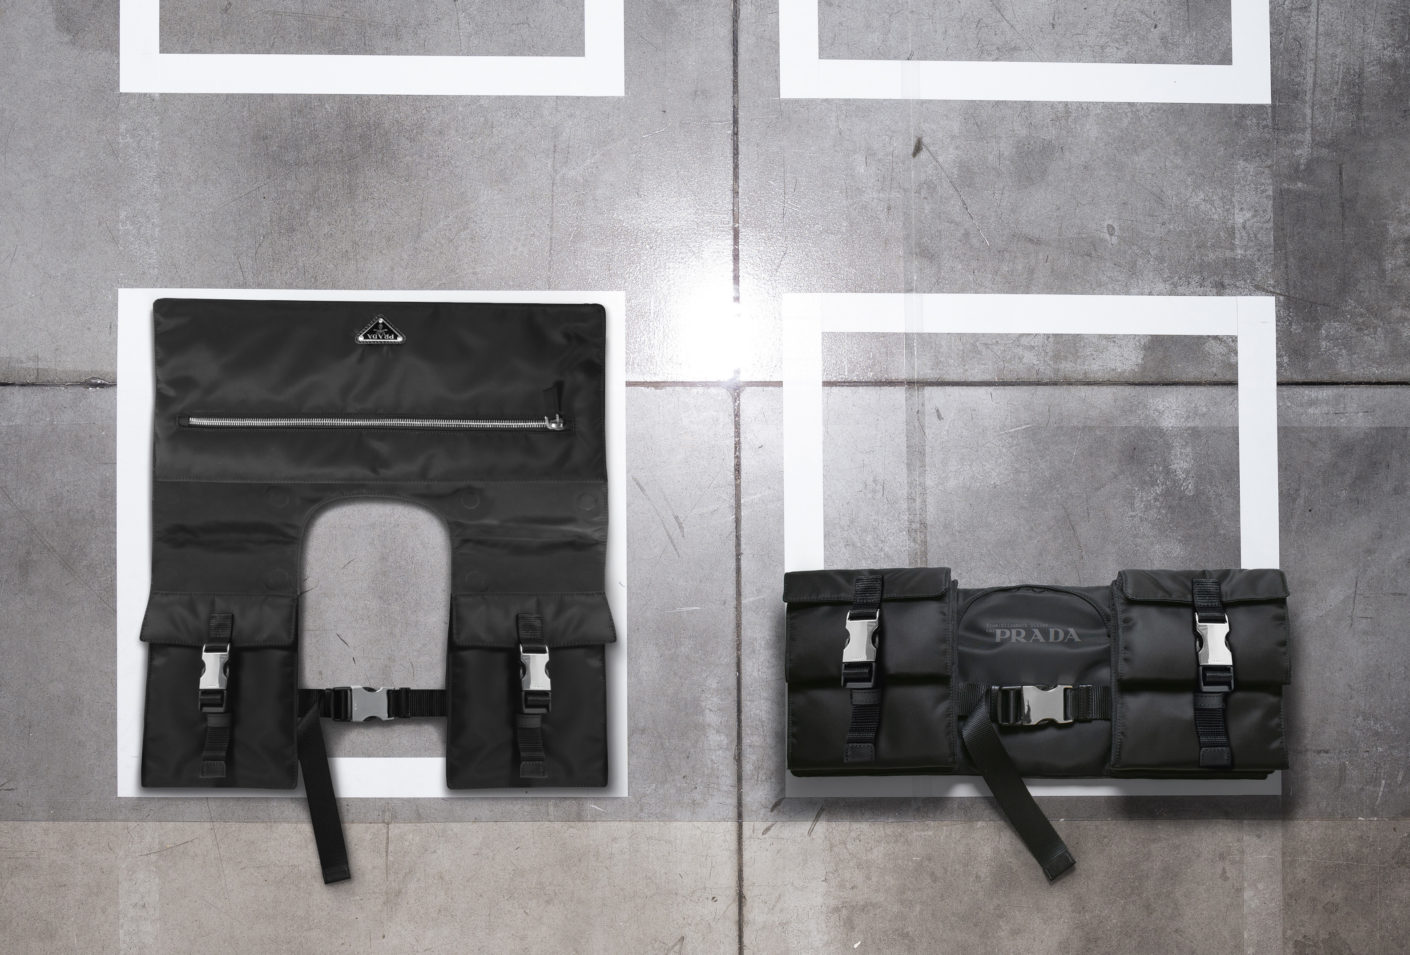 Bag by Elisabeth Diller from the New York architectural office Diller Scofidio + Renfro